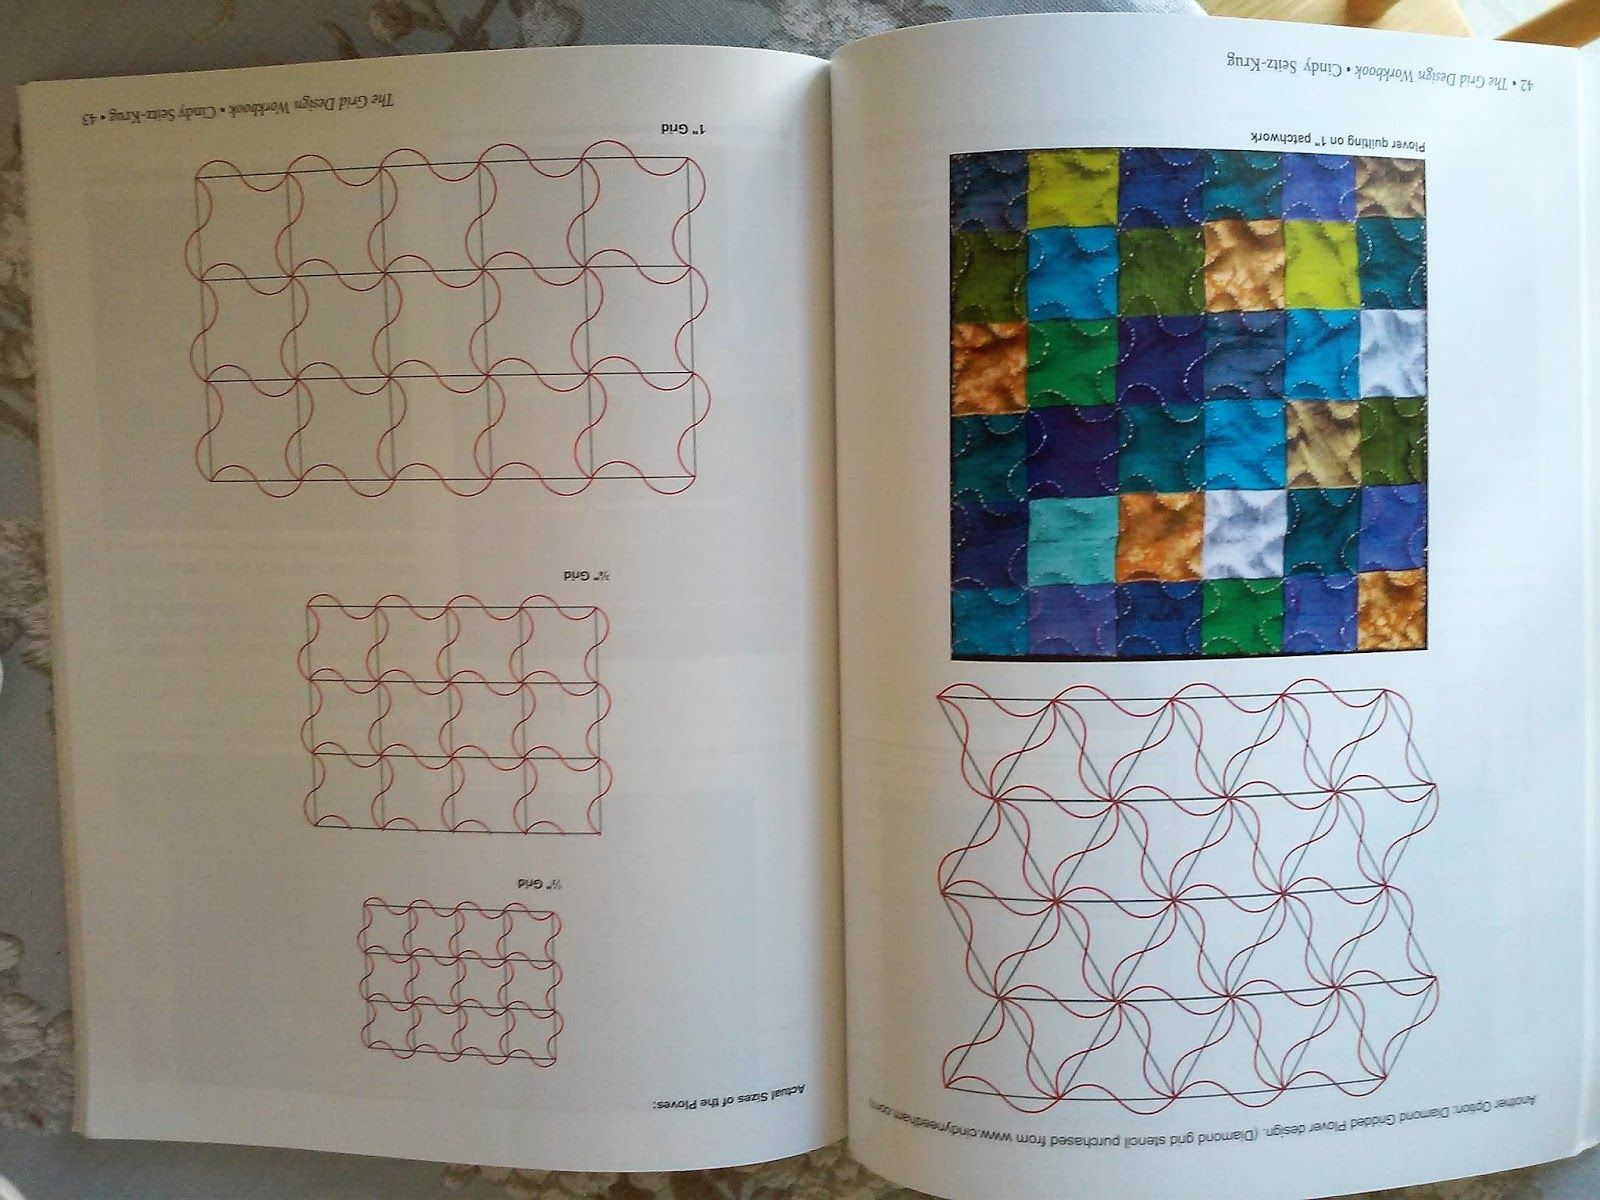 For all of us machine quilters who are looking for some new ideas for quilting designs, this is a wonderful new book by Cindy Seitz-Kru...